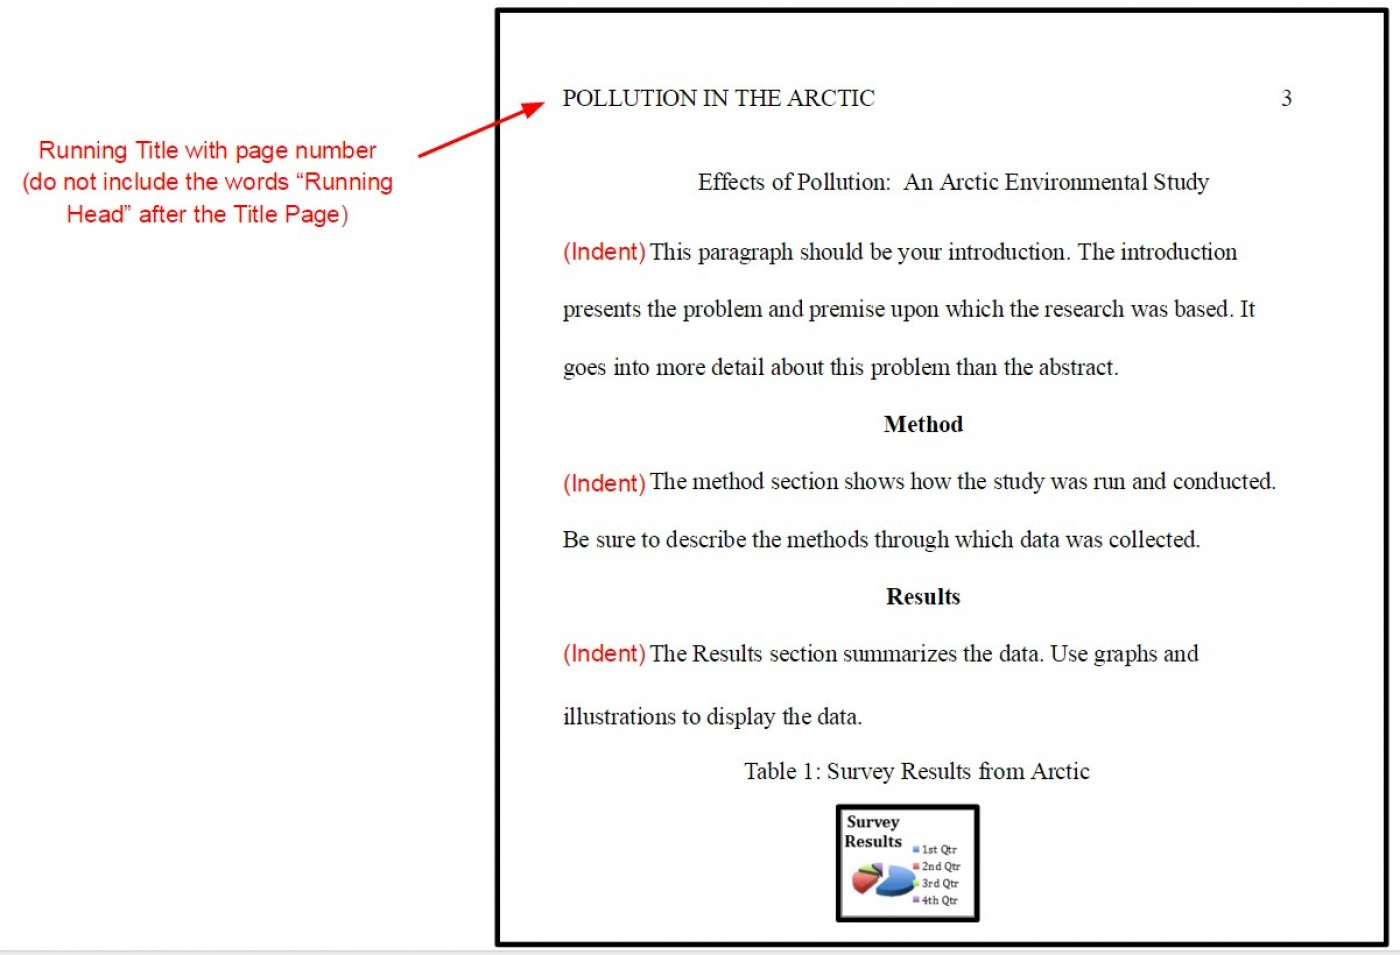 003 Apa Format For Research Paper Imposing Title Page Example References 1400